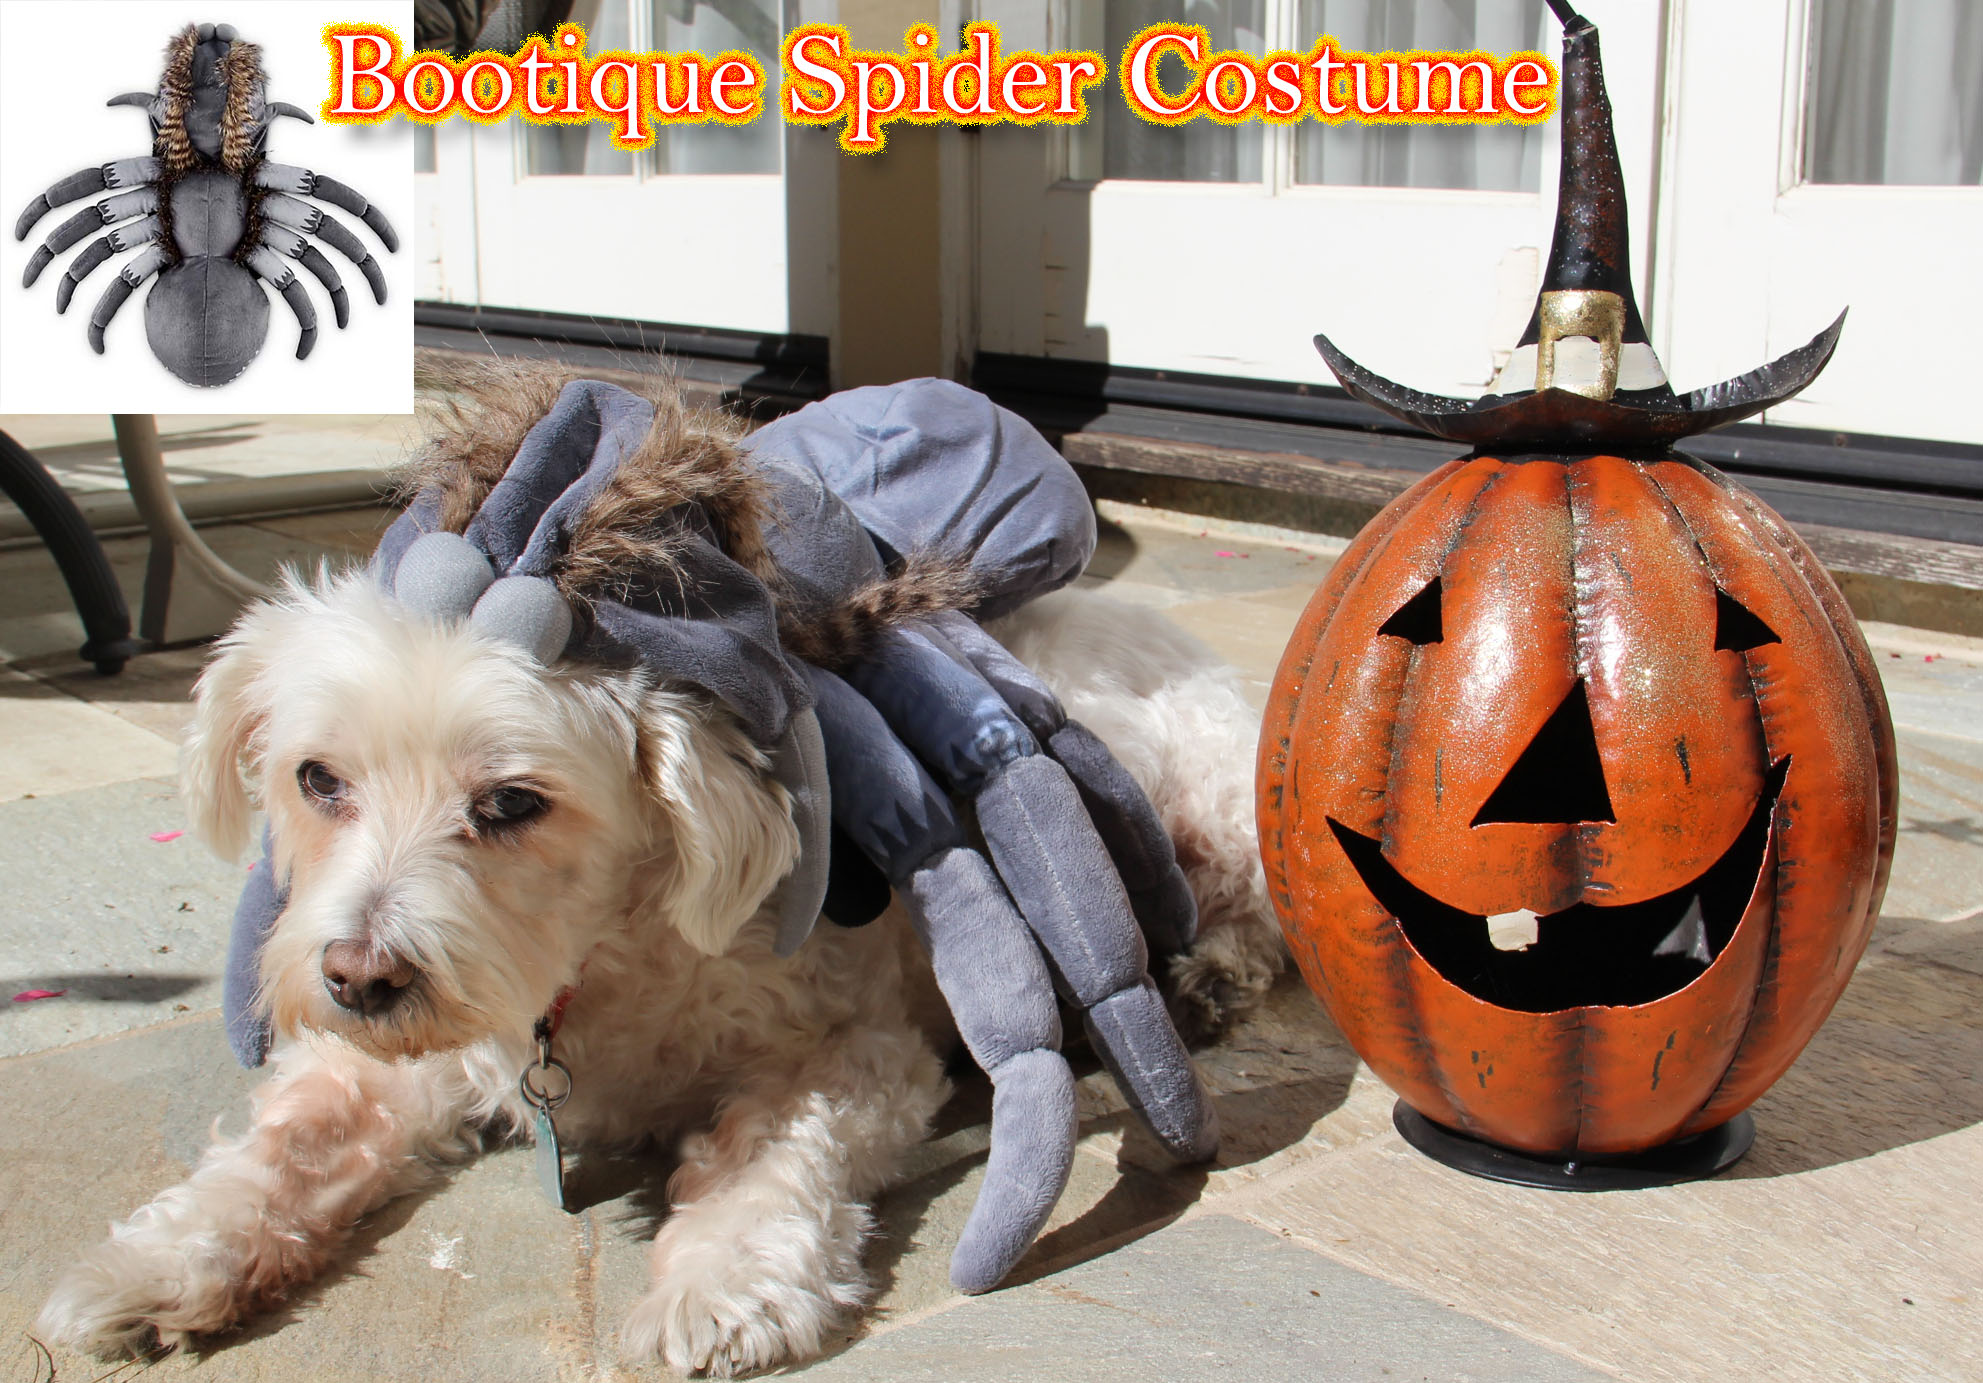 Petco halloween costume, spider